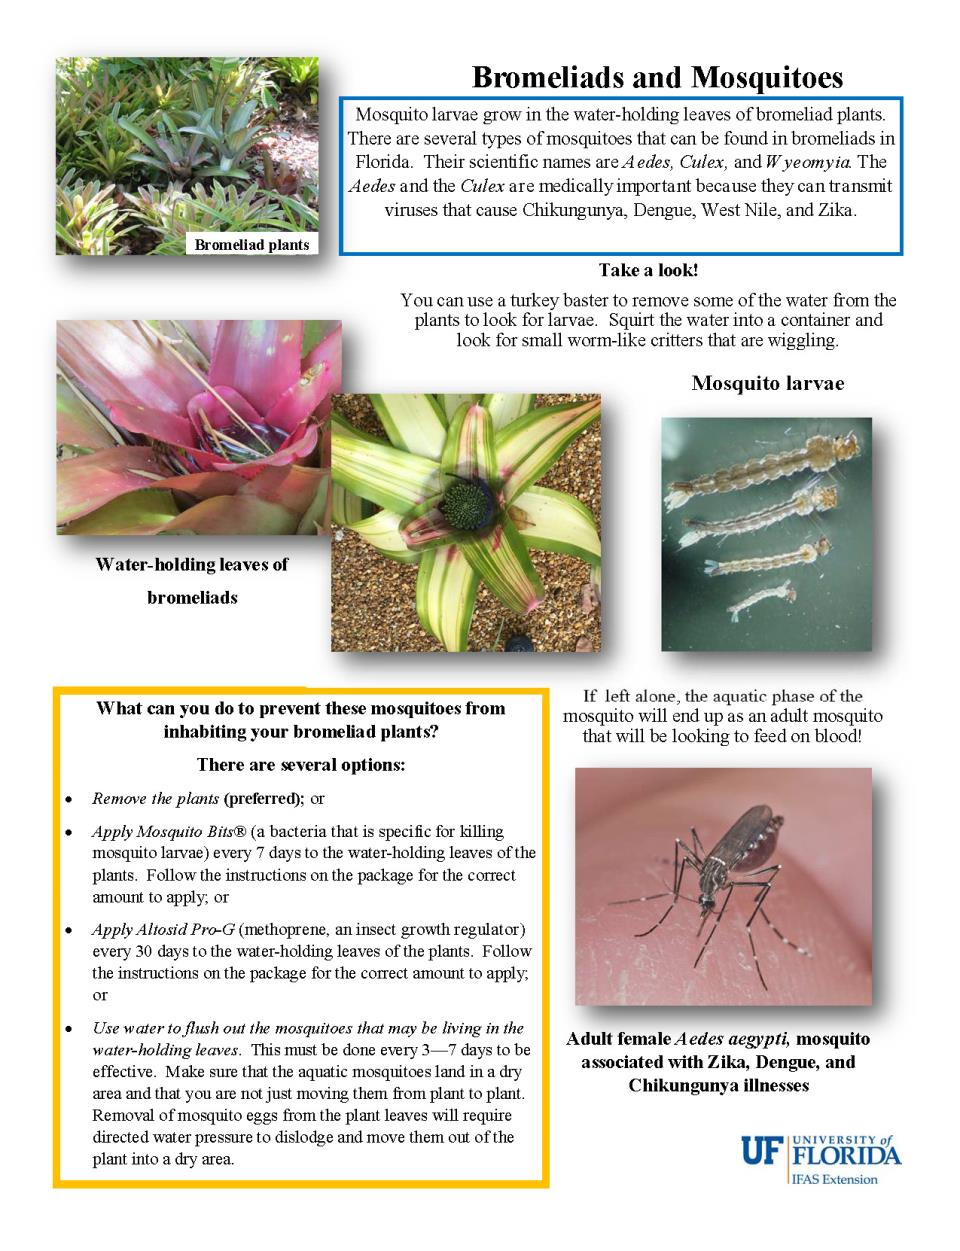 Bromeliads and Mosquitoes_1 page flyer_plain